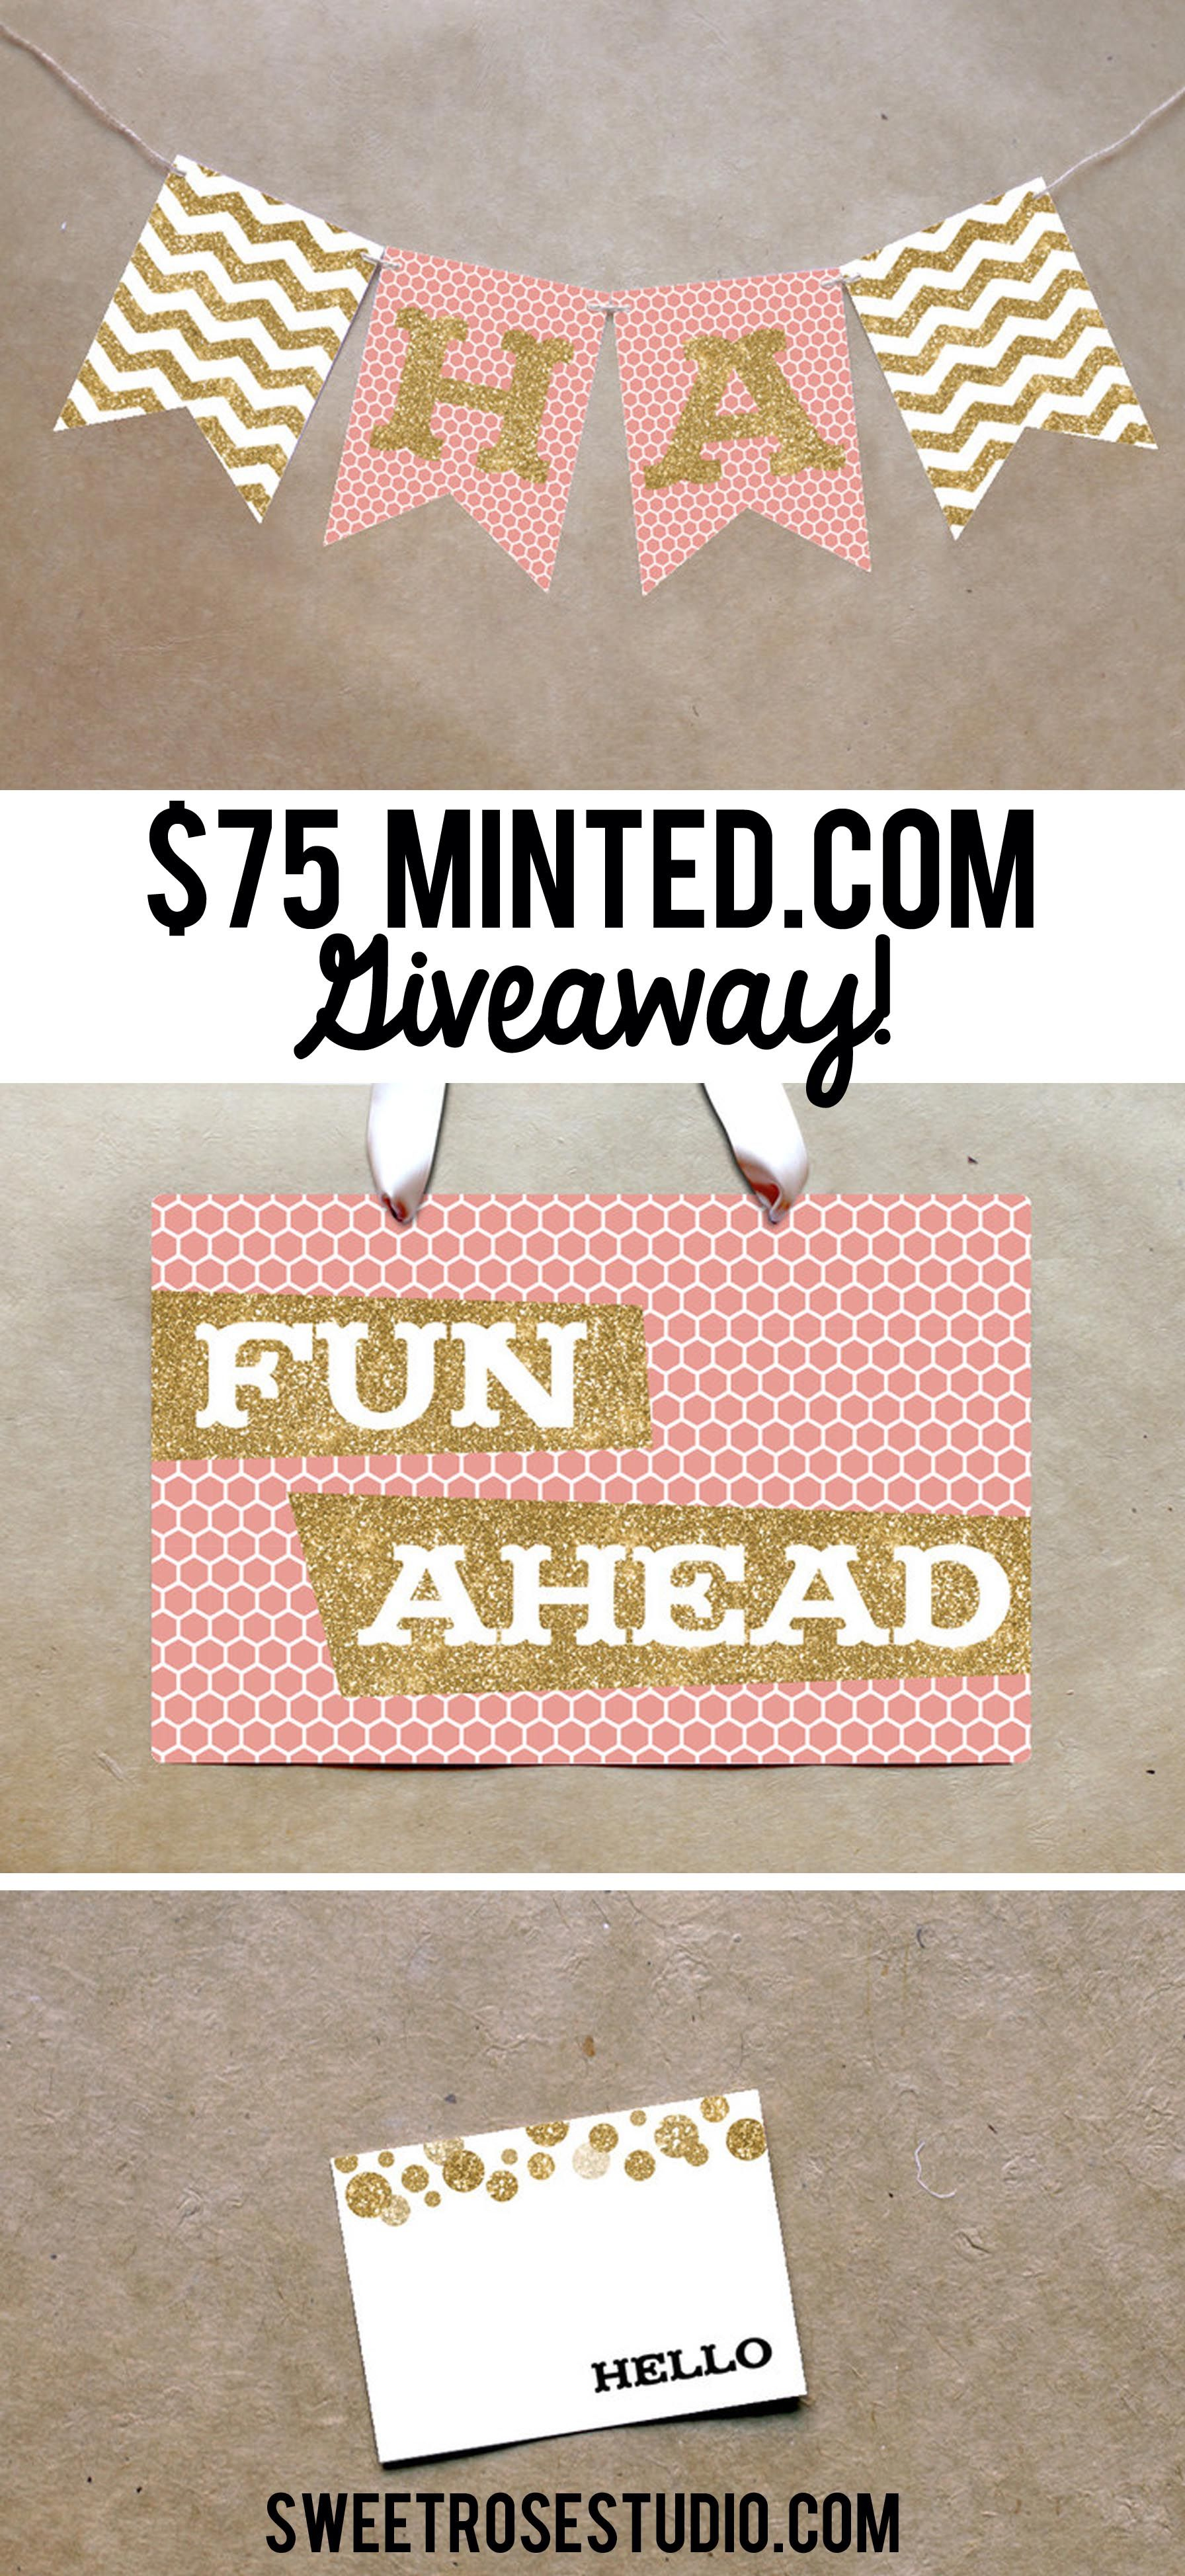 $75 Minted.com Giveaway at Sweet Rose Studio! #giveaway